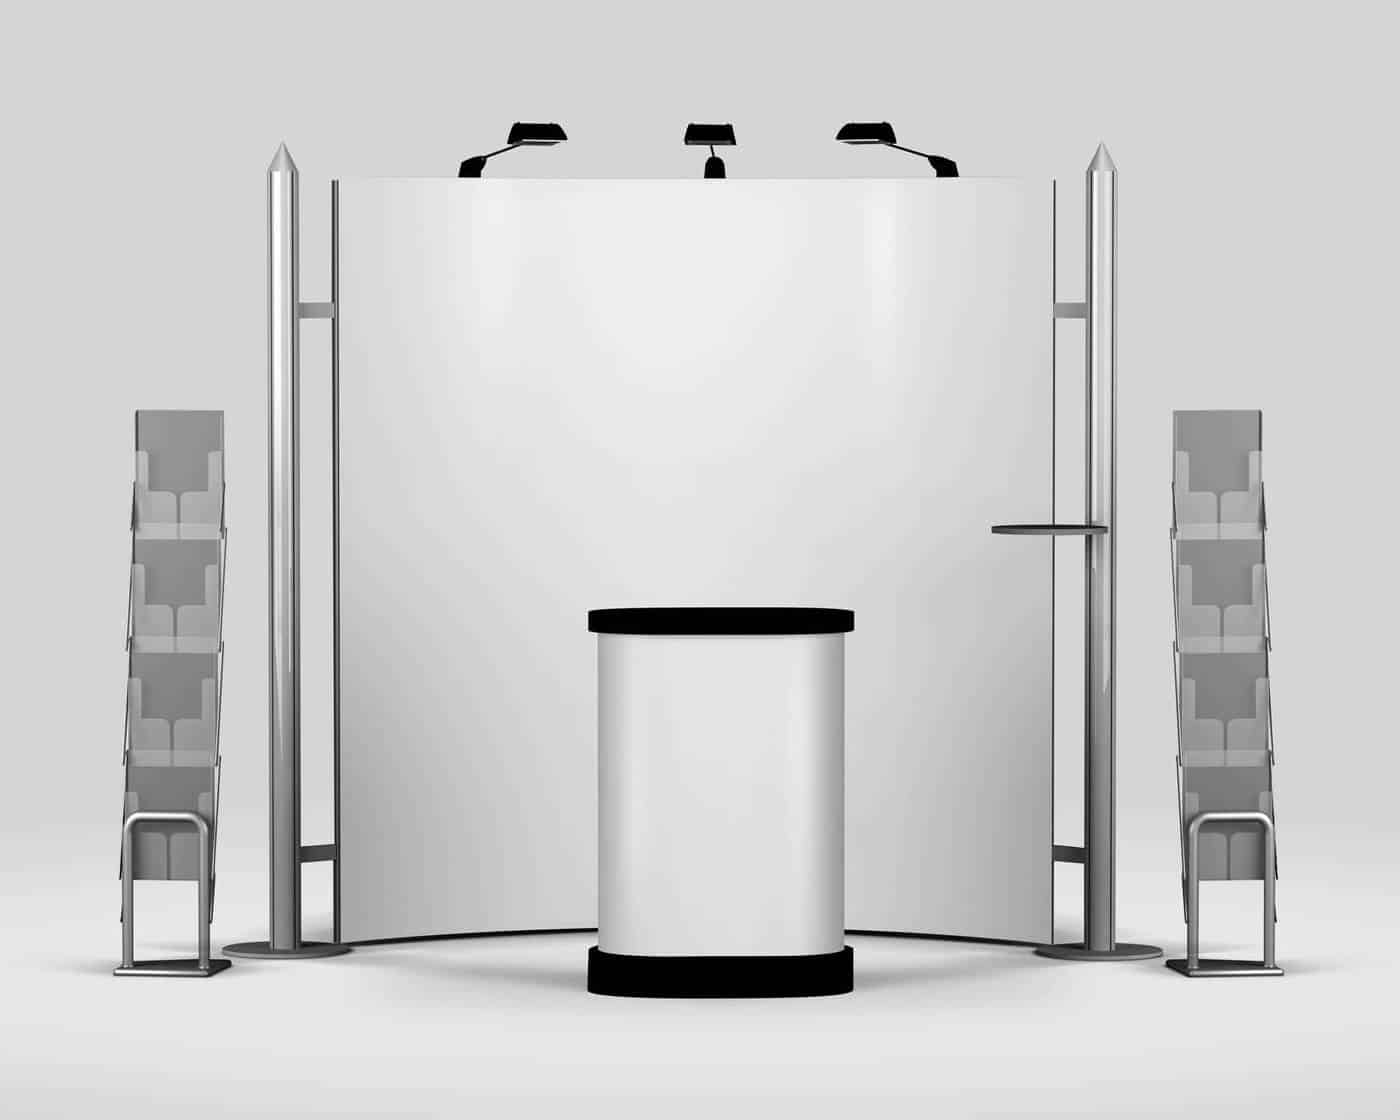 Simple Exhibition Stand Mockup : Trade show exhibition booth mockup vectogravic designs